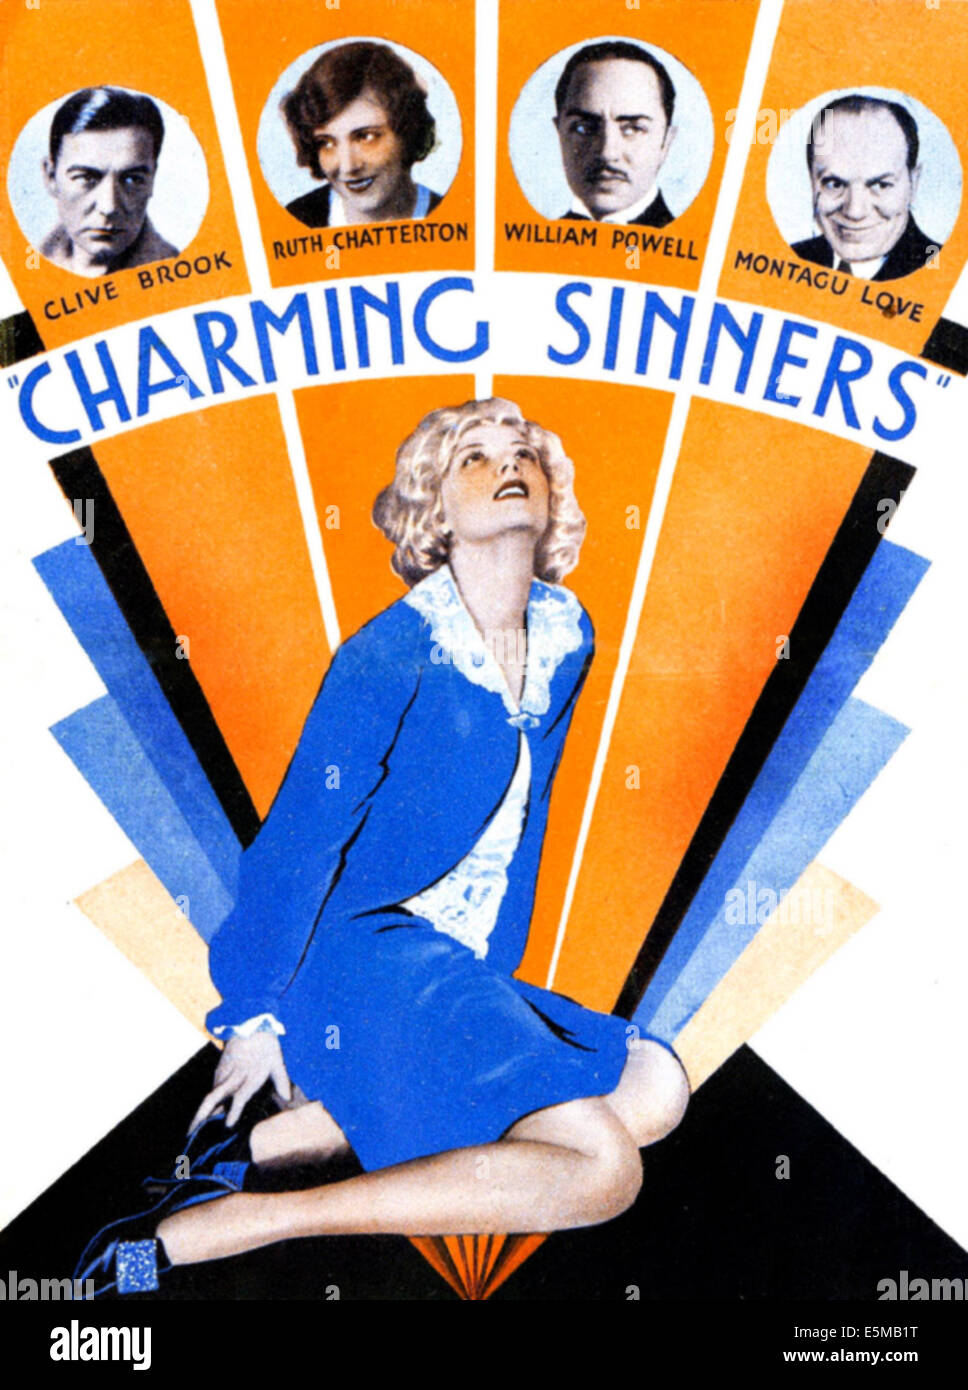 CHARMING SINNERS, US poster art, bottom: Mary Nolan; top from left: Clive Brook, Ruth Chatterton, William Powell, - Stock Image